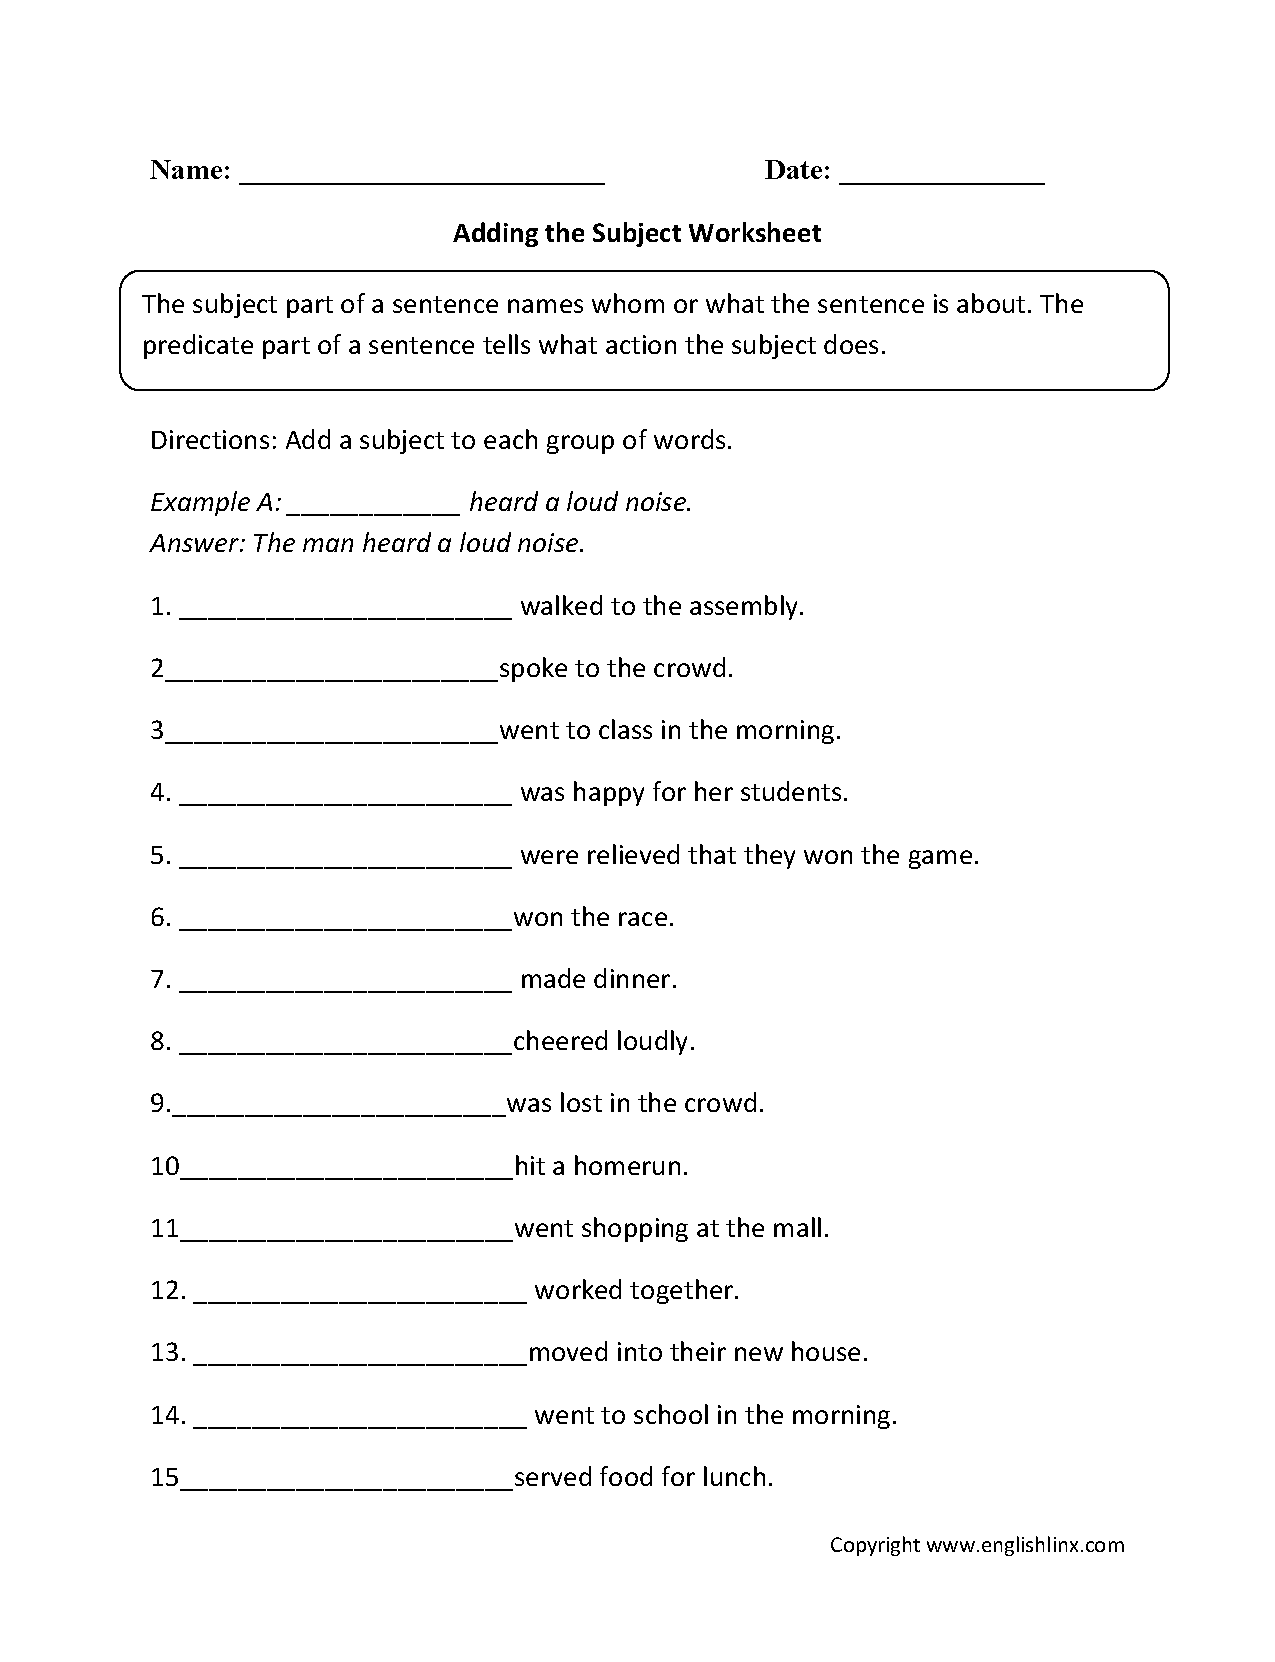 Worksheets Homophones Worksheet 5th Grade englishlinx com subject and predicate worksheets adding a worksheet